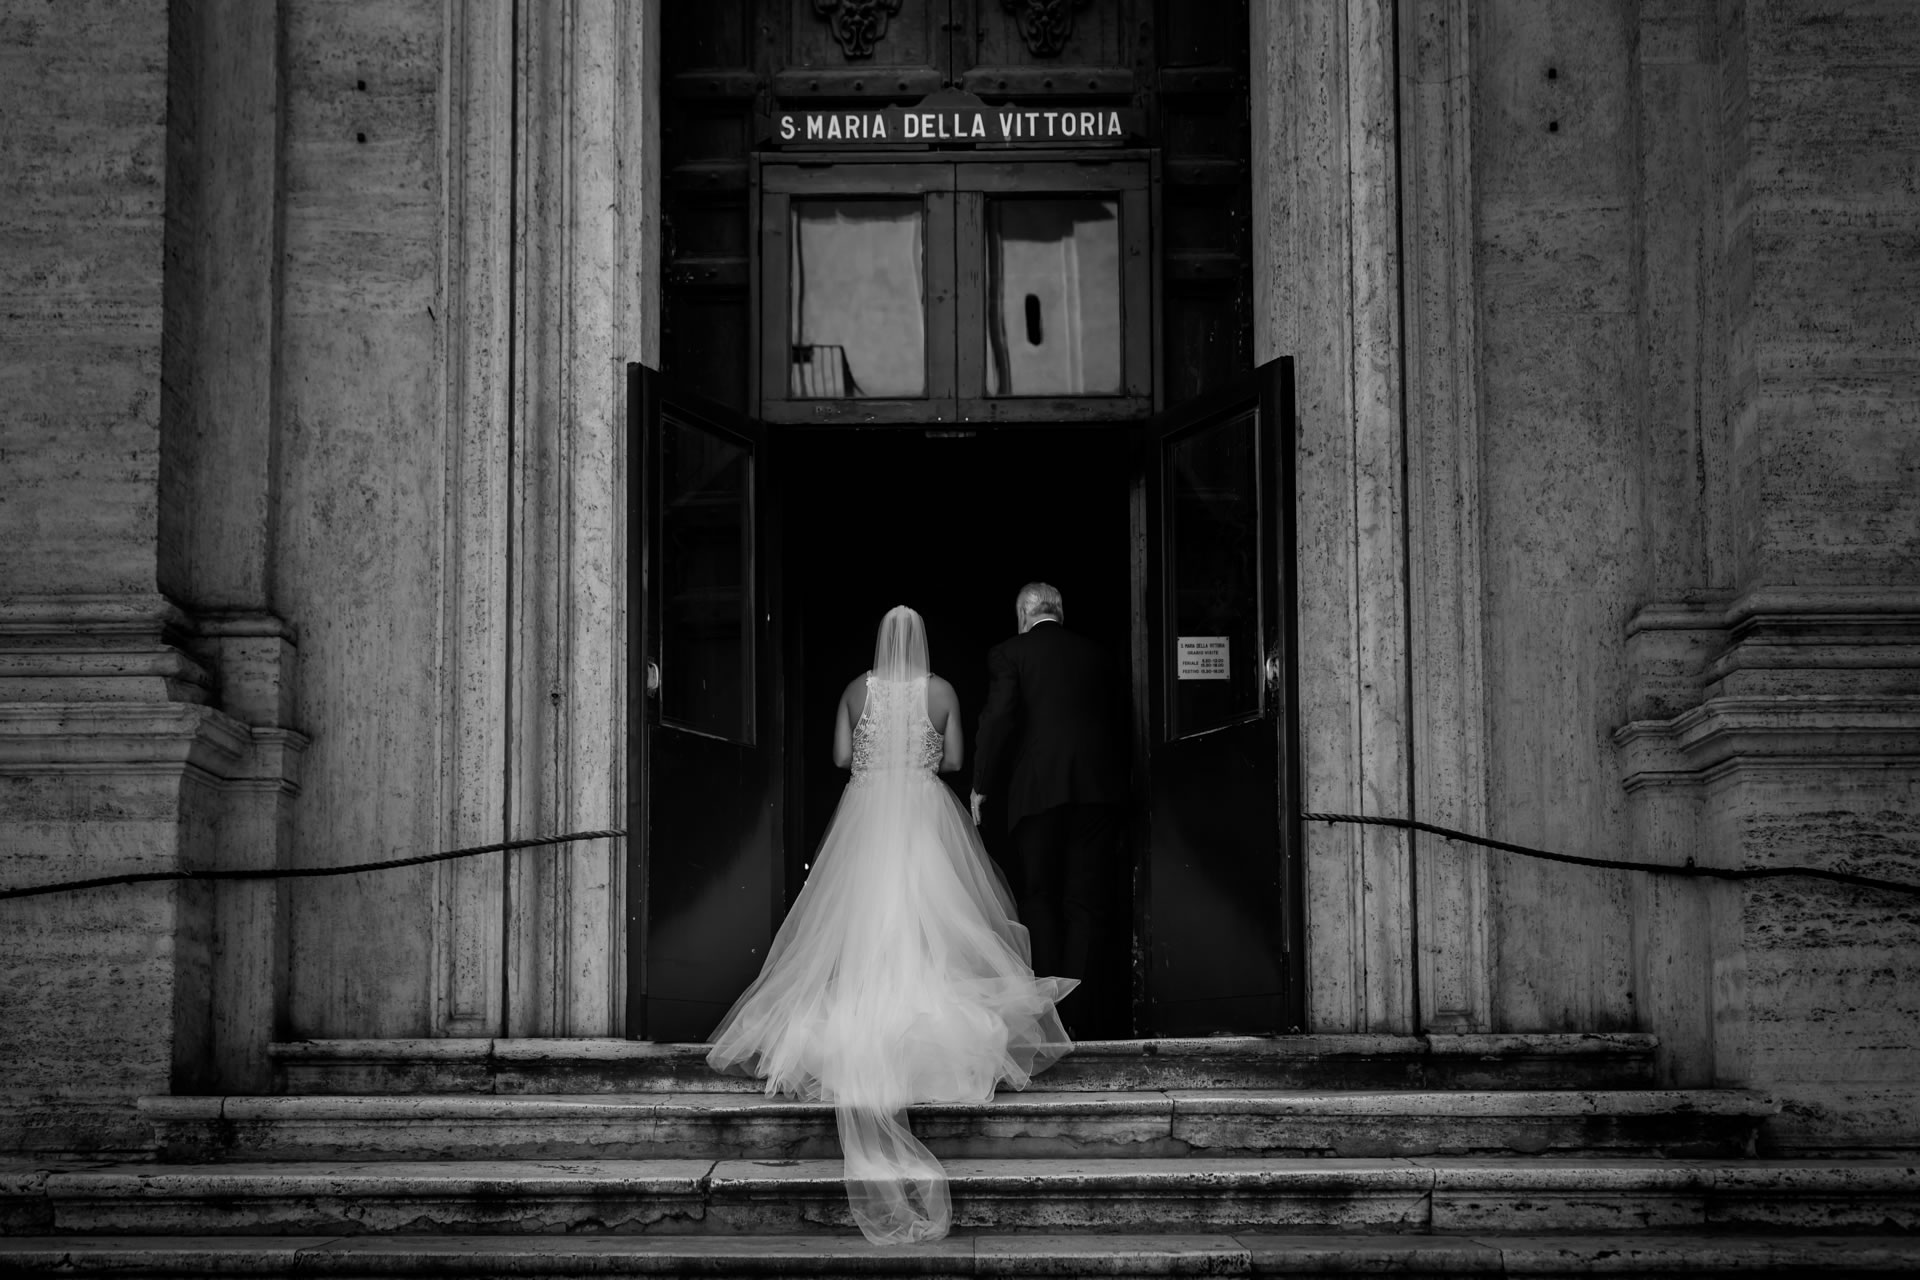 - 16 :: A breath-taking wedding in Rome, the eternal city :: Luxury wedding photography - 15 ::  - 16